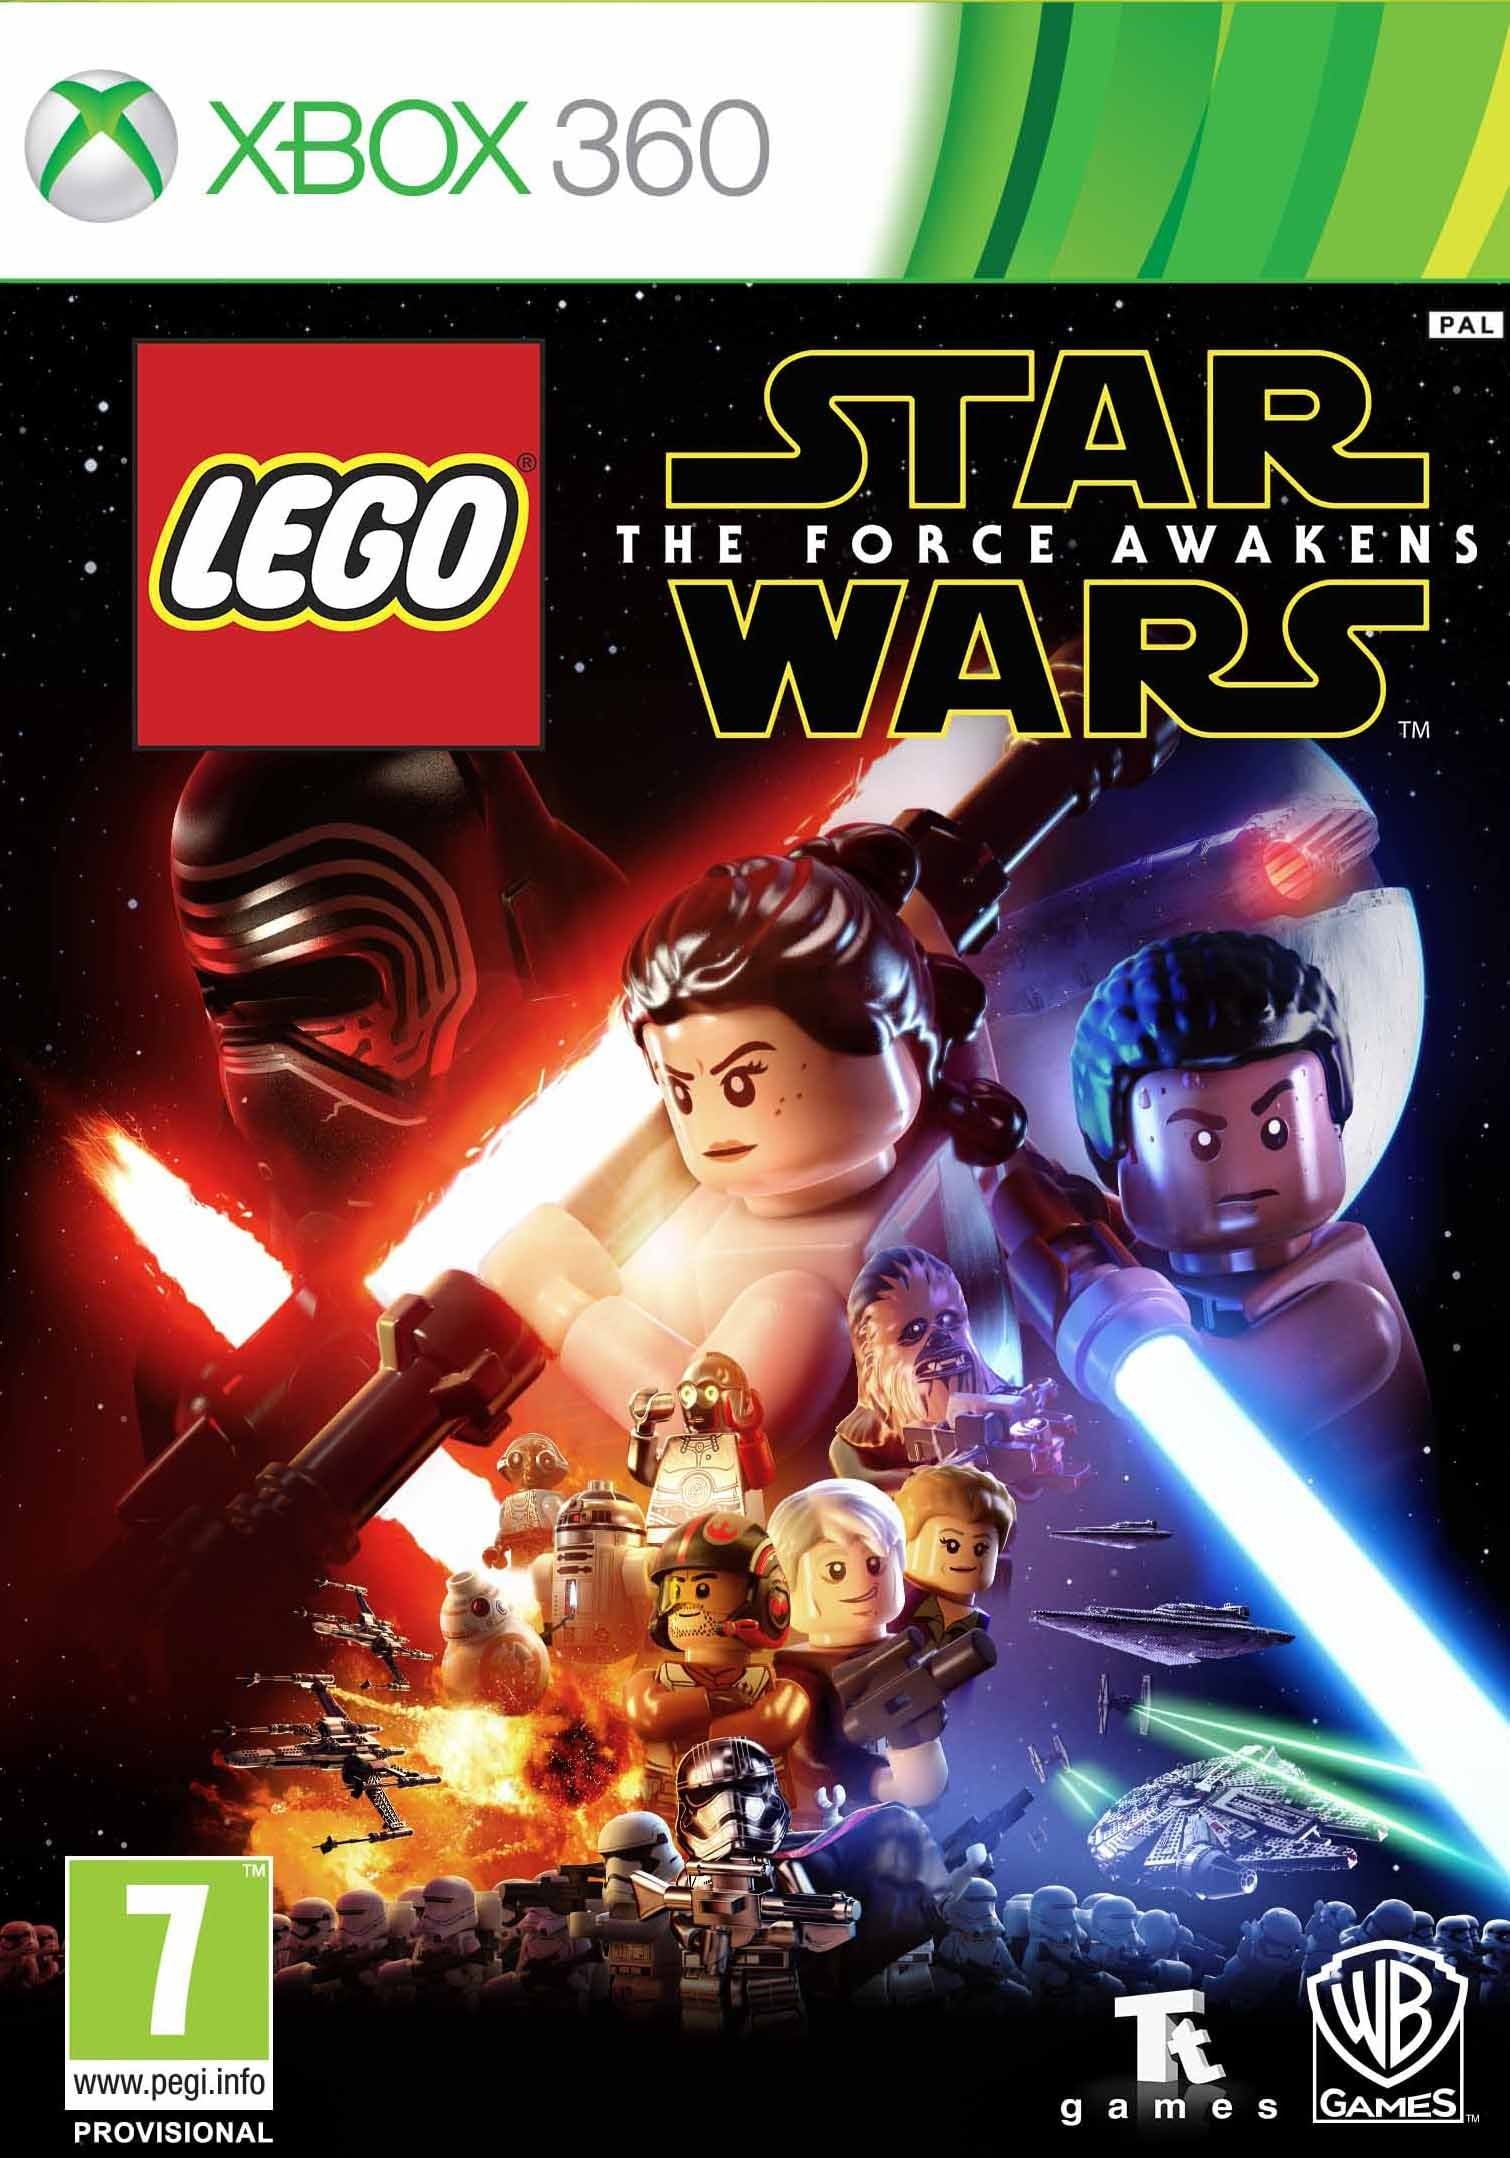 Lego Star Wars The Force Awakens - ShamyStores